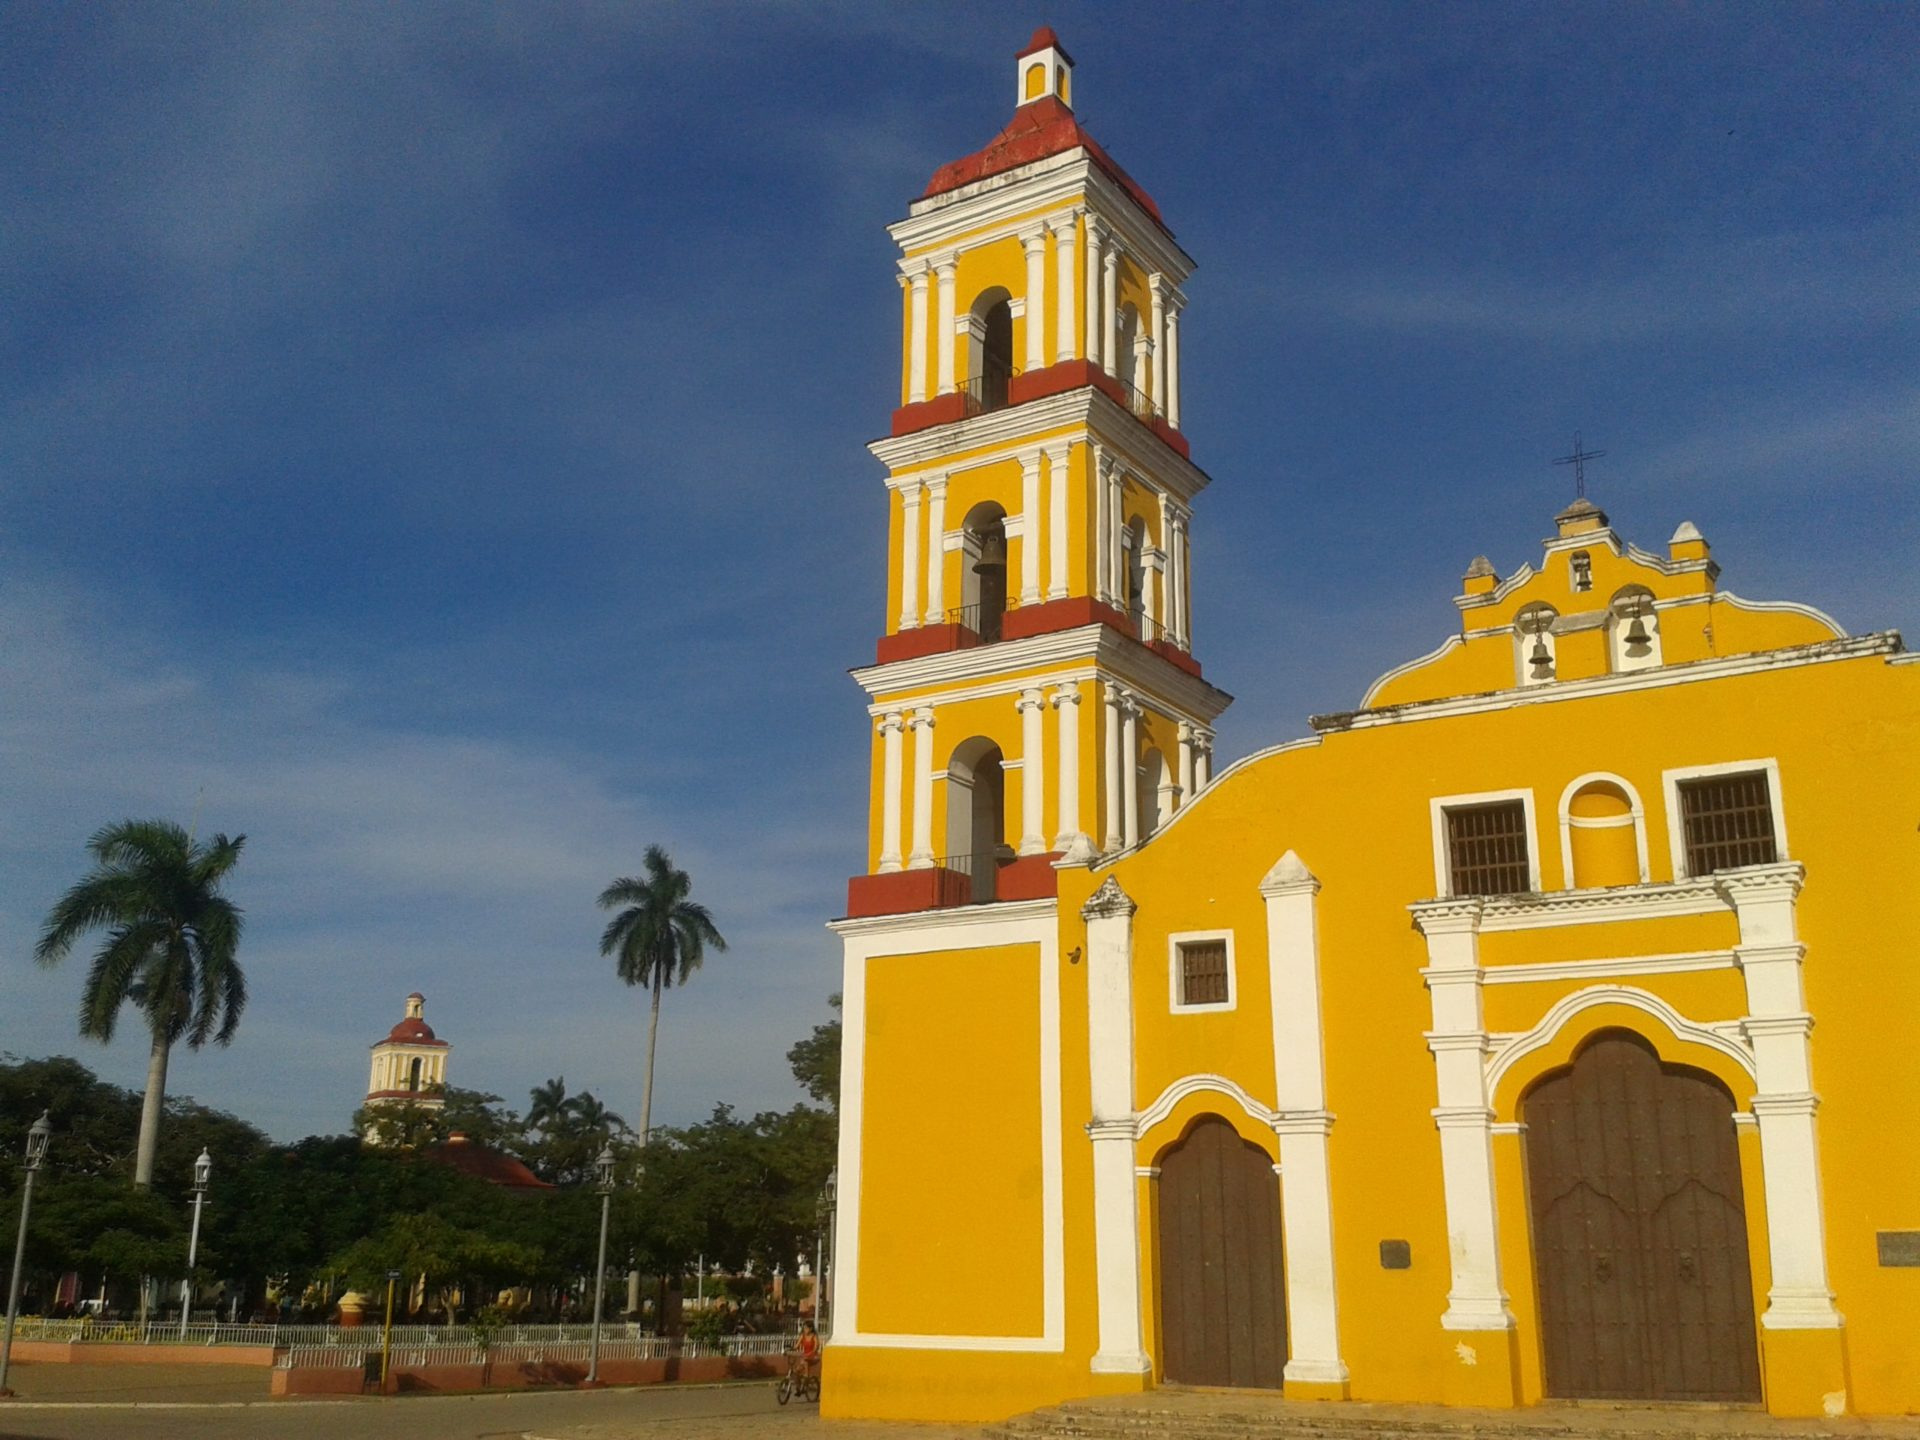 Check out my hometown: 10 reasons why you should visit Remedios